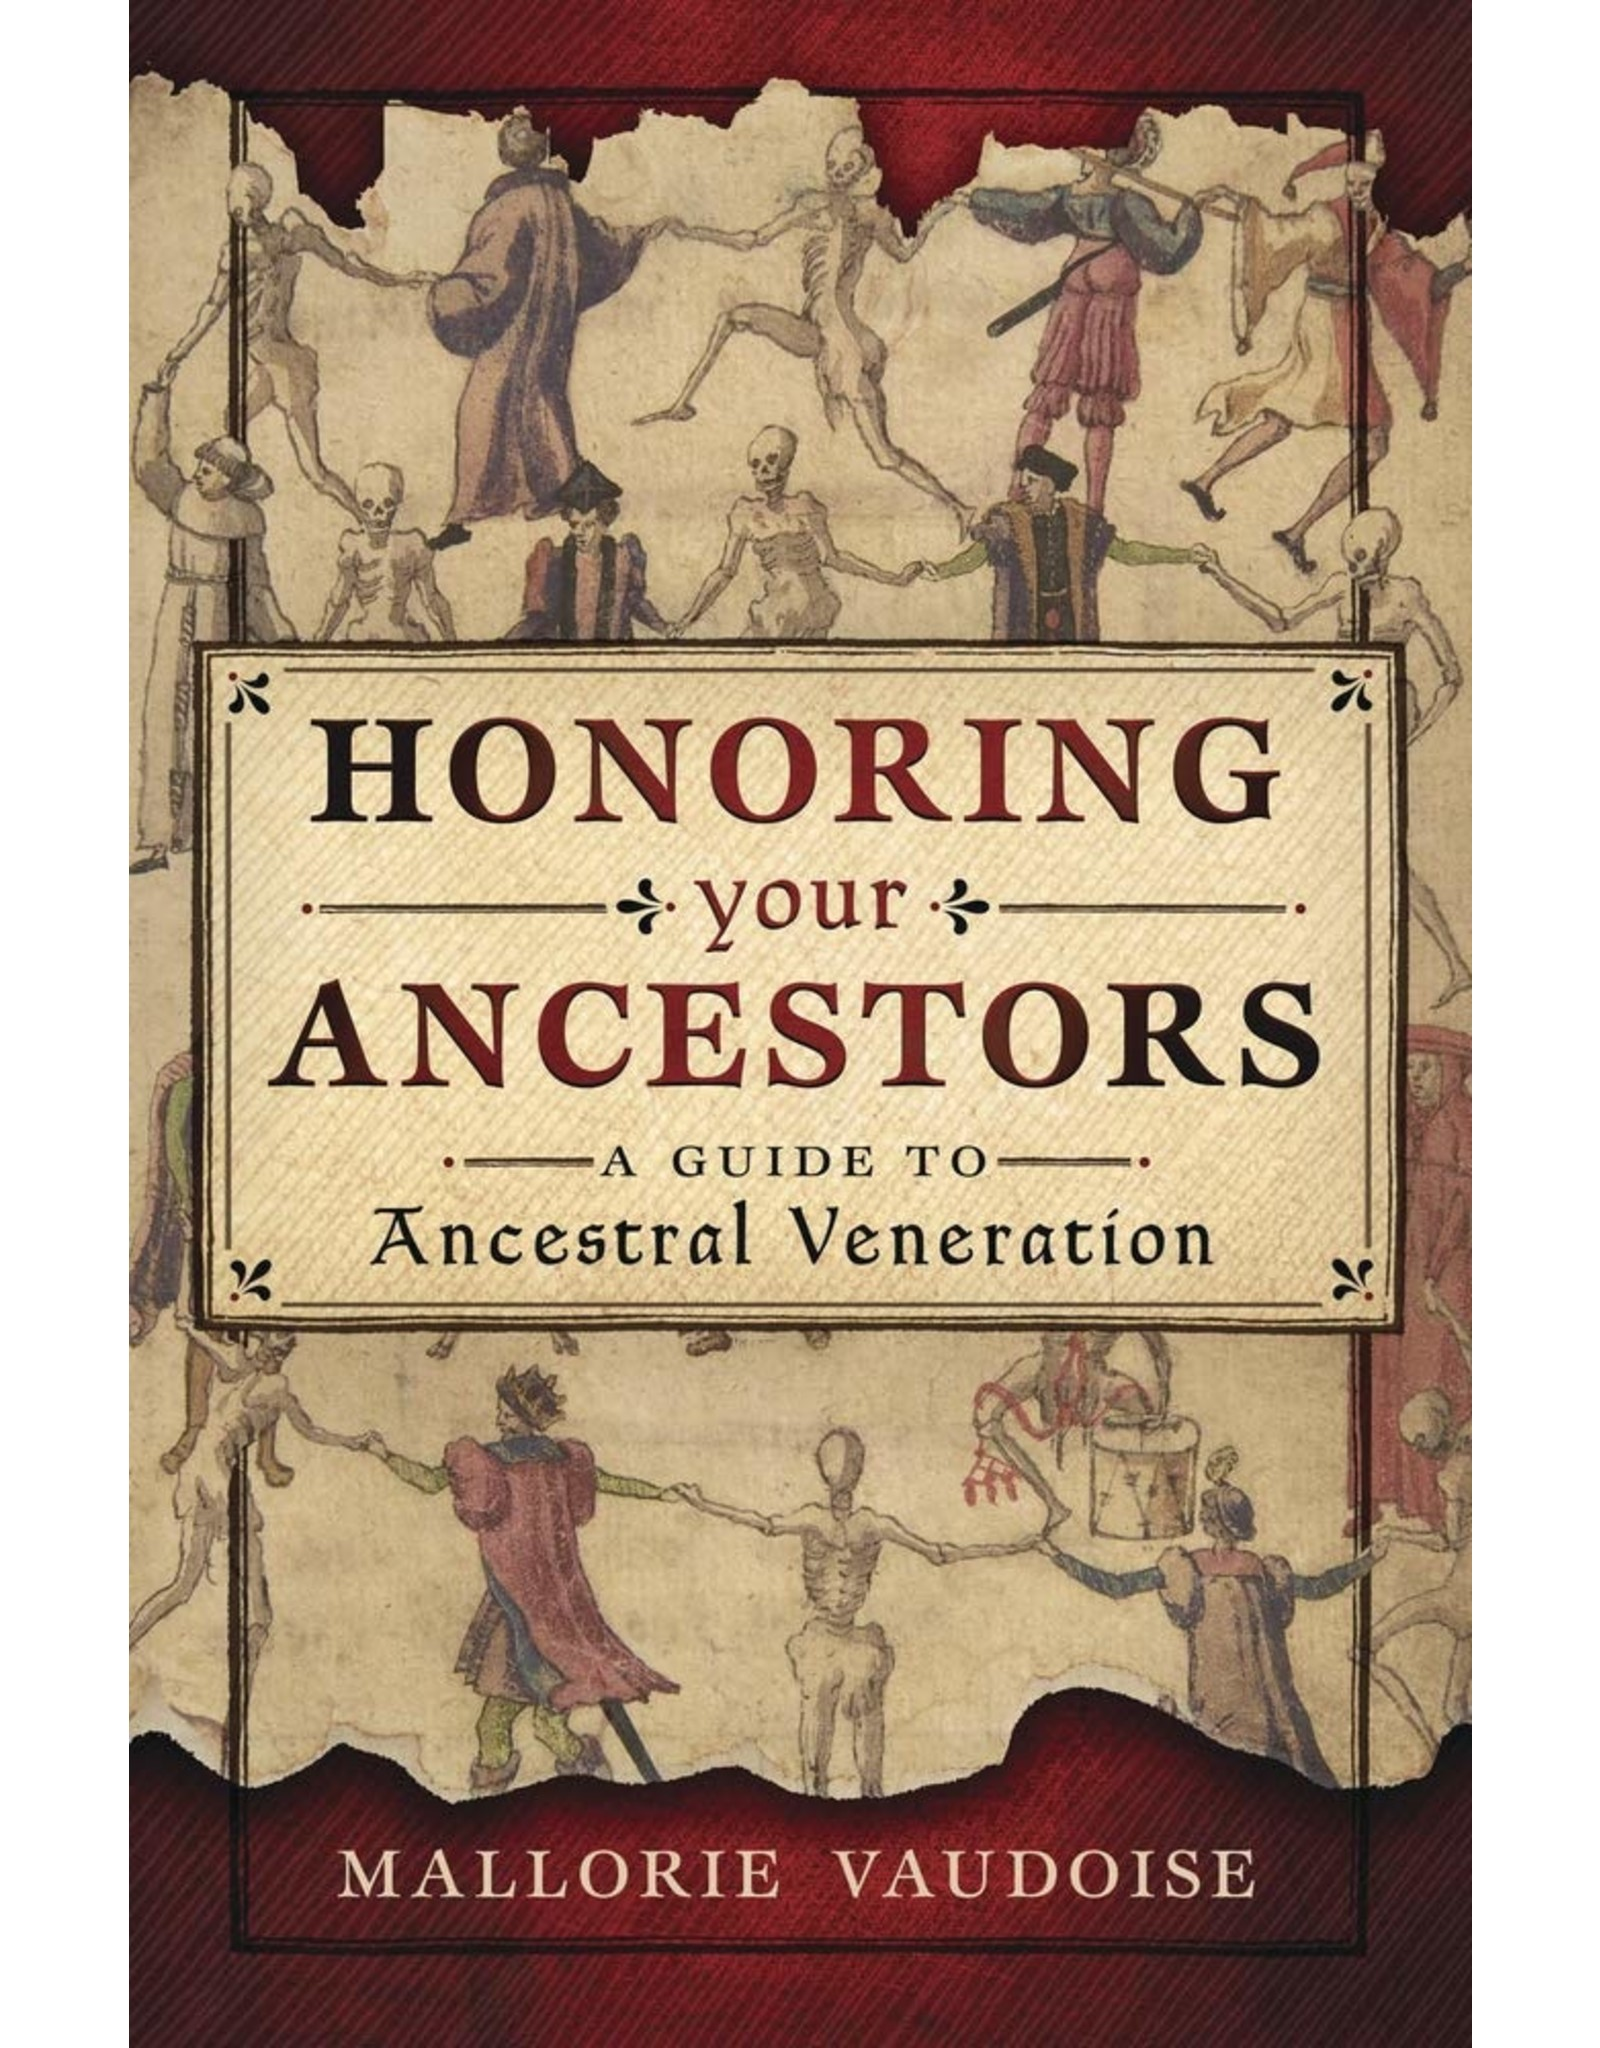 Honoring your Ancestors: A Guide to Ancestral Veneration